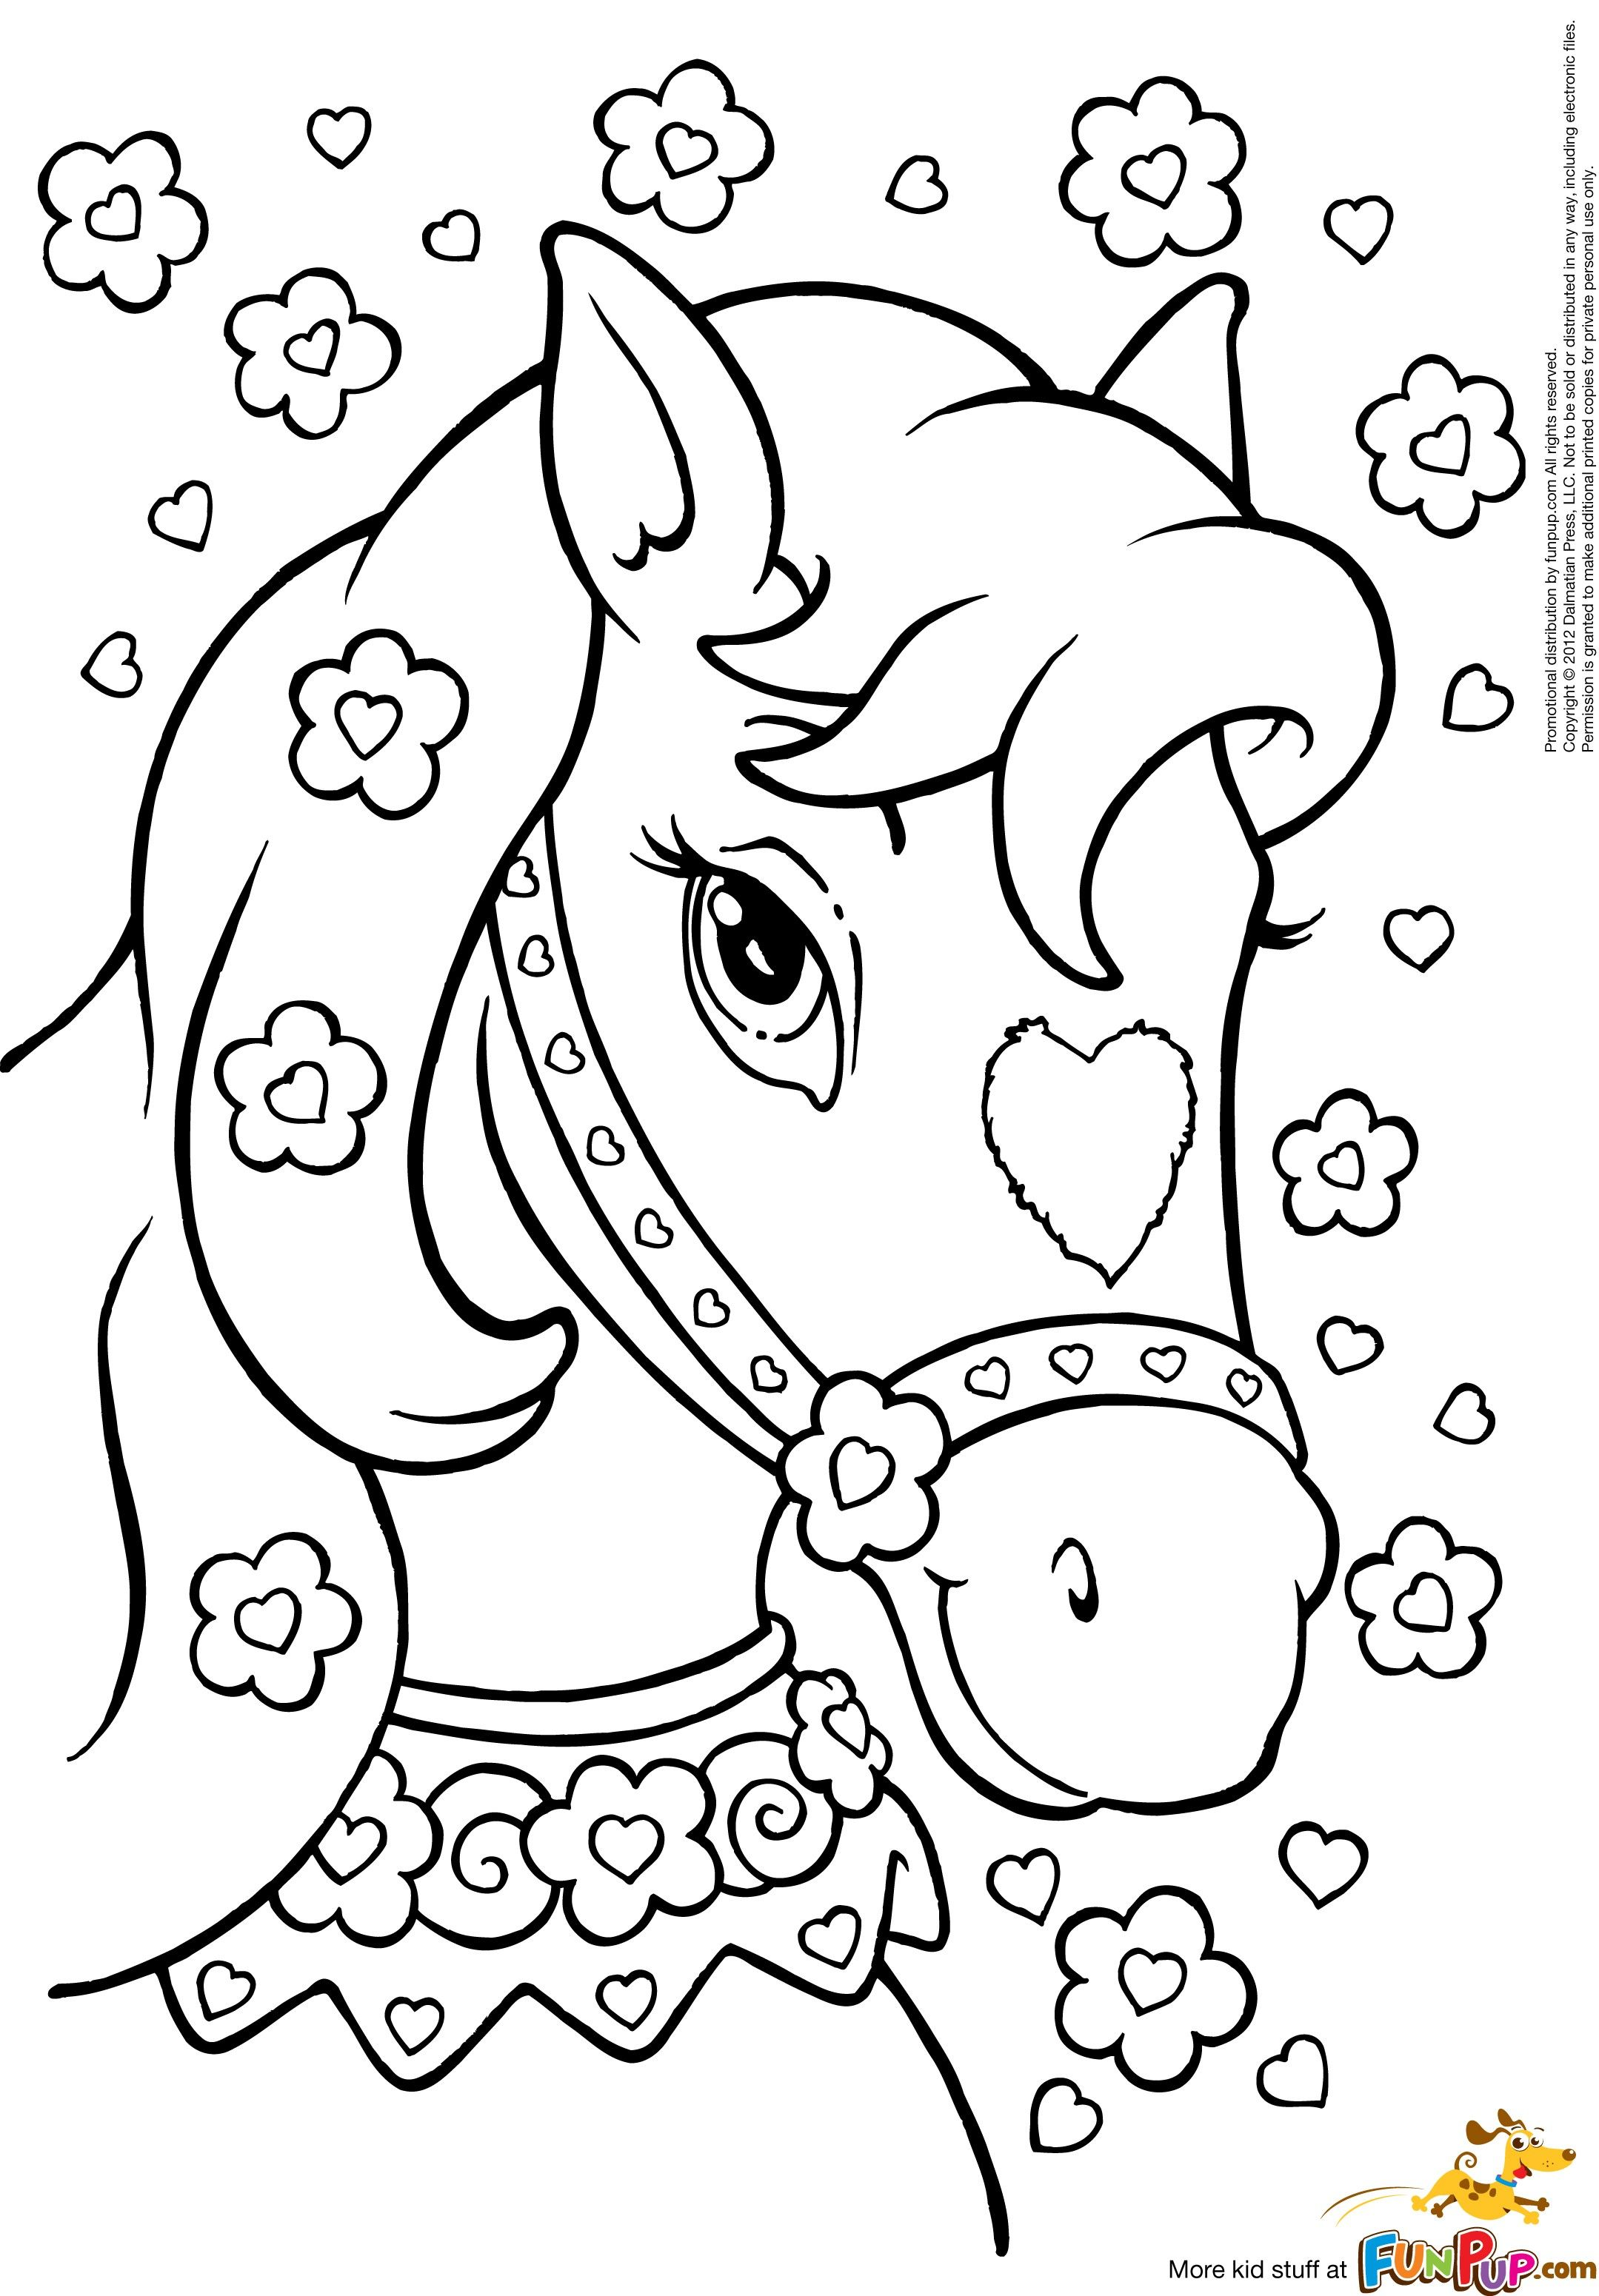 Exceptional Printable Princess Coloring Pages | Coloring Pages For Kids